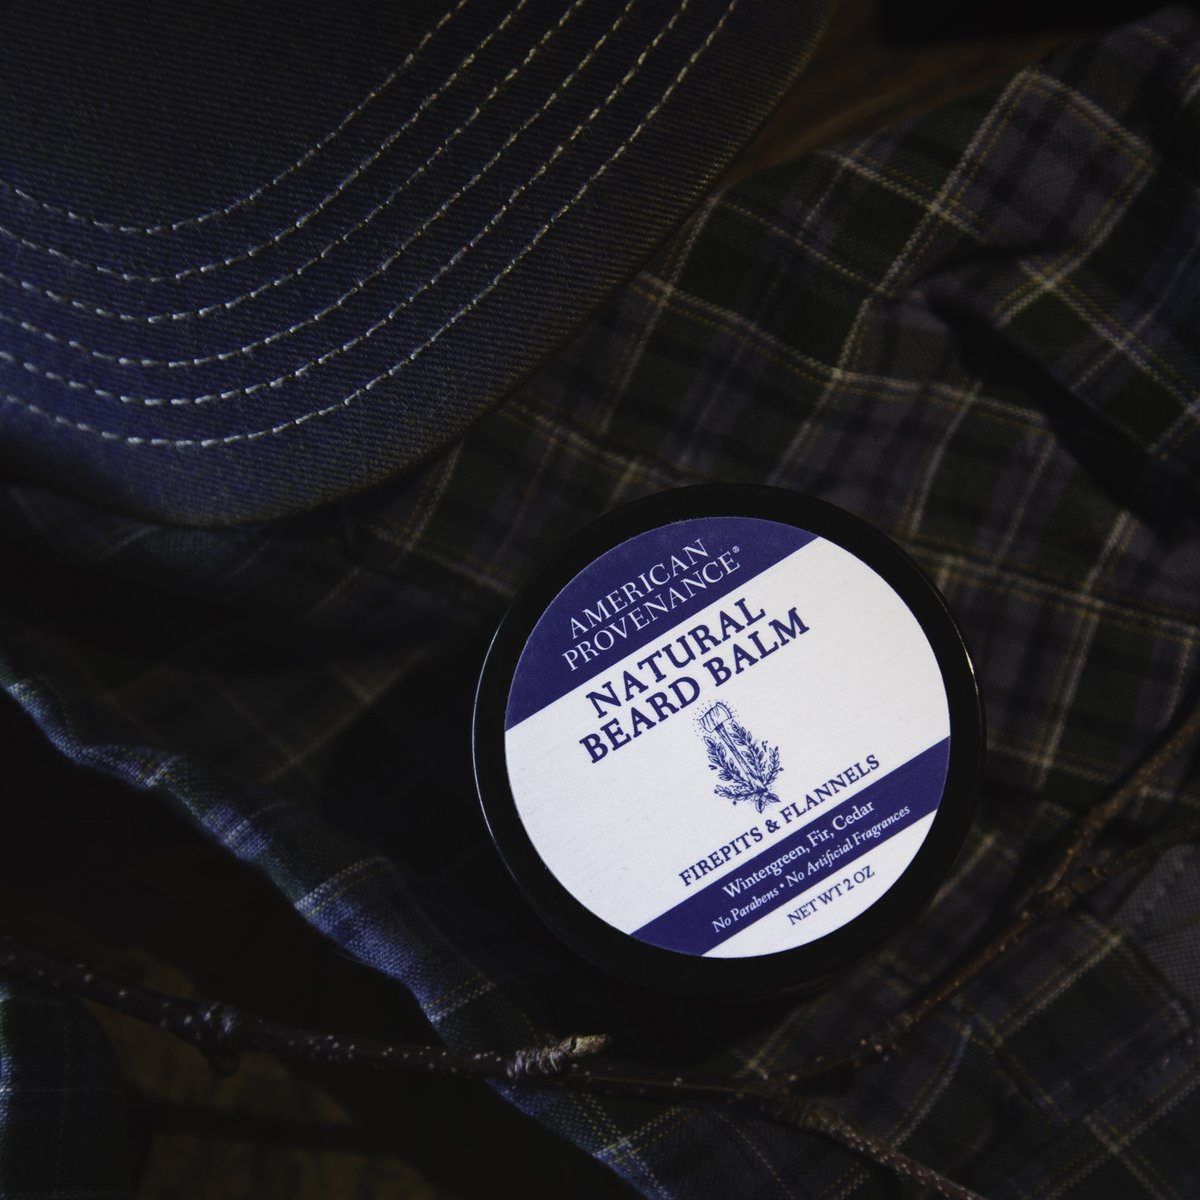 Whether you've got facial hair or a clean shaven face, we have products for you!  #AmericanProvenance #GoConfidently #PurelyUncompromising  #NaturalAftershave #NaturalBeardcare #NaturalBeardOil #SmallBatch #MadeintheUSA #NaturalBeardBalm #BeardOil #BeardBalm #Aftershavepic.twitter.com/FL3Y1mCkHM